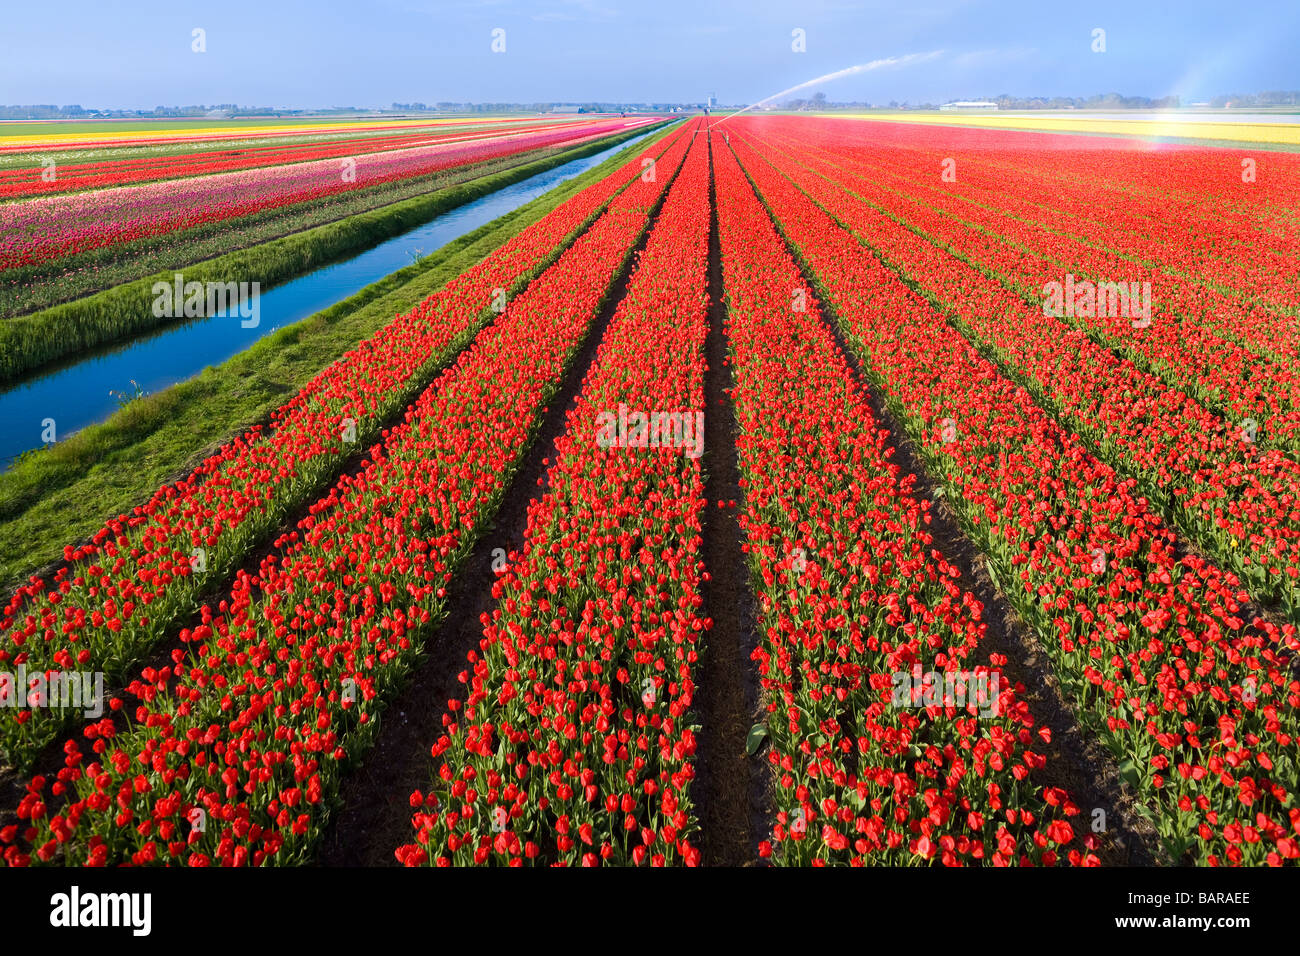 Dutch Tulip fields, tulips in rows near Alkmaar, Holland, with canal and water sprinkler for irrigation. Netherlands - Stock Image